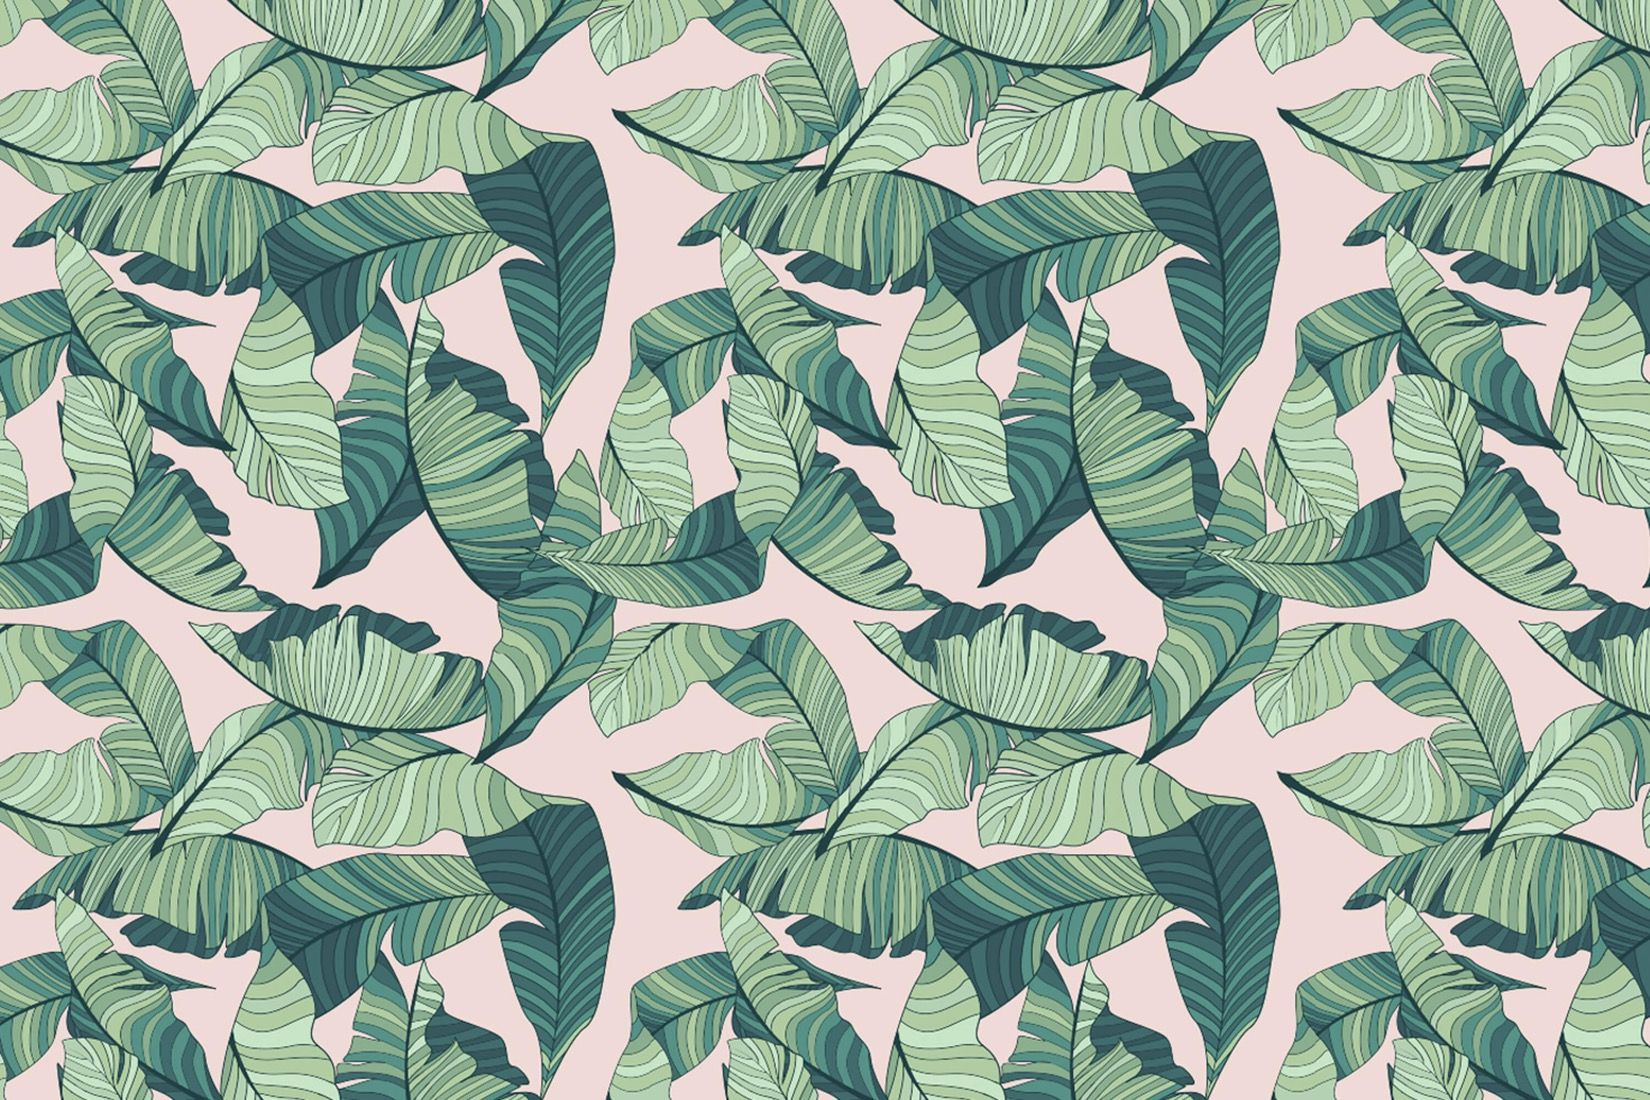 Pin By Marie Jane Minaj On Tropical Wallpaper Tropical Wallpaper Leaf Wallpaper Jungle Wallpaper Tropic flamingo cartoon seamless organic vector background with nature foliage textures and dark grunge items whales in waves. tropical wallpaper leaf wallpaper